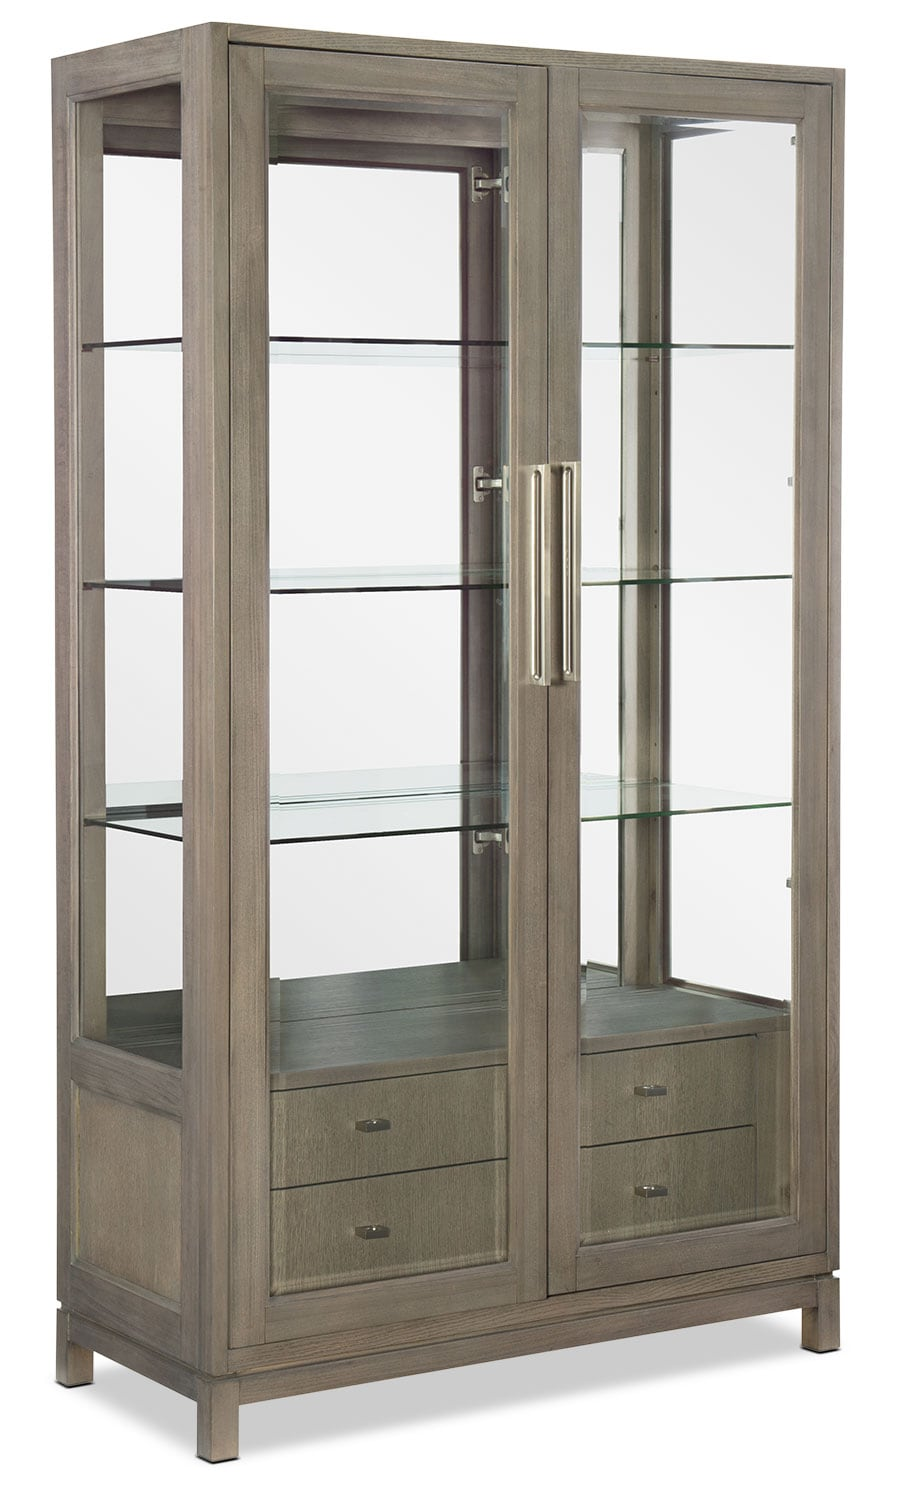 Rachael Ray Highline Bunching Display Cabinet - Greige